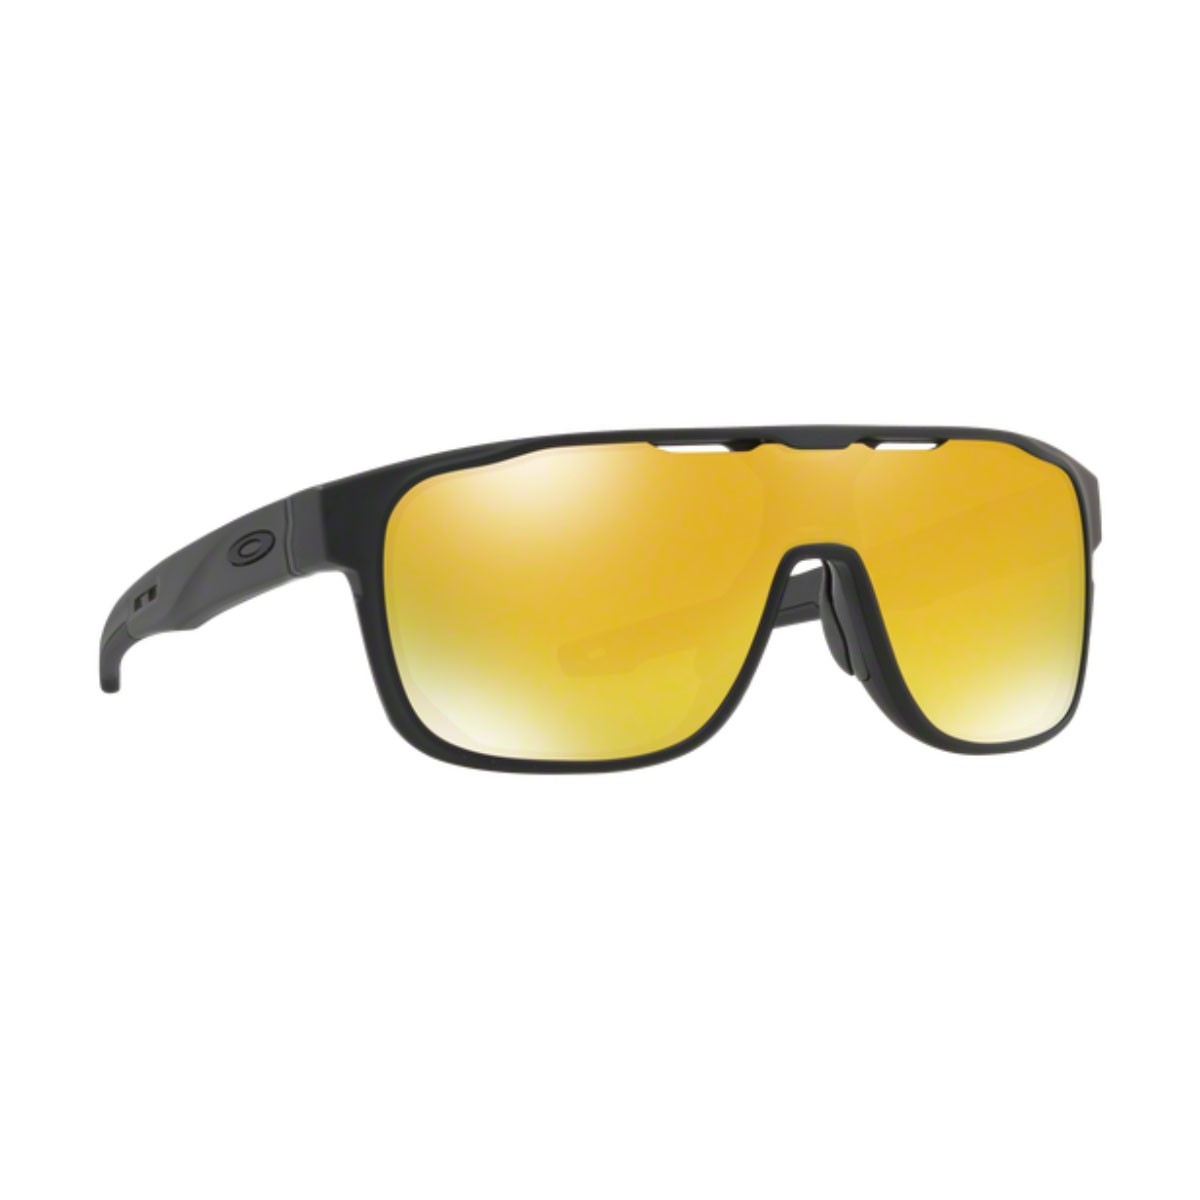 Oakley - Occhiale da Sole Uomo, Crossrange™ Shield, Matte Black/24k Iridium  OO9387 938706  C131